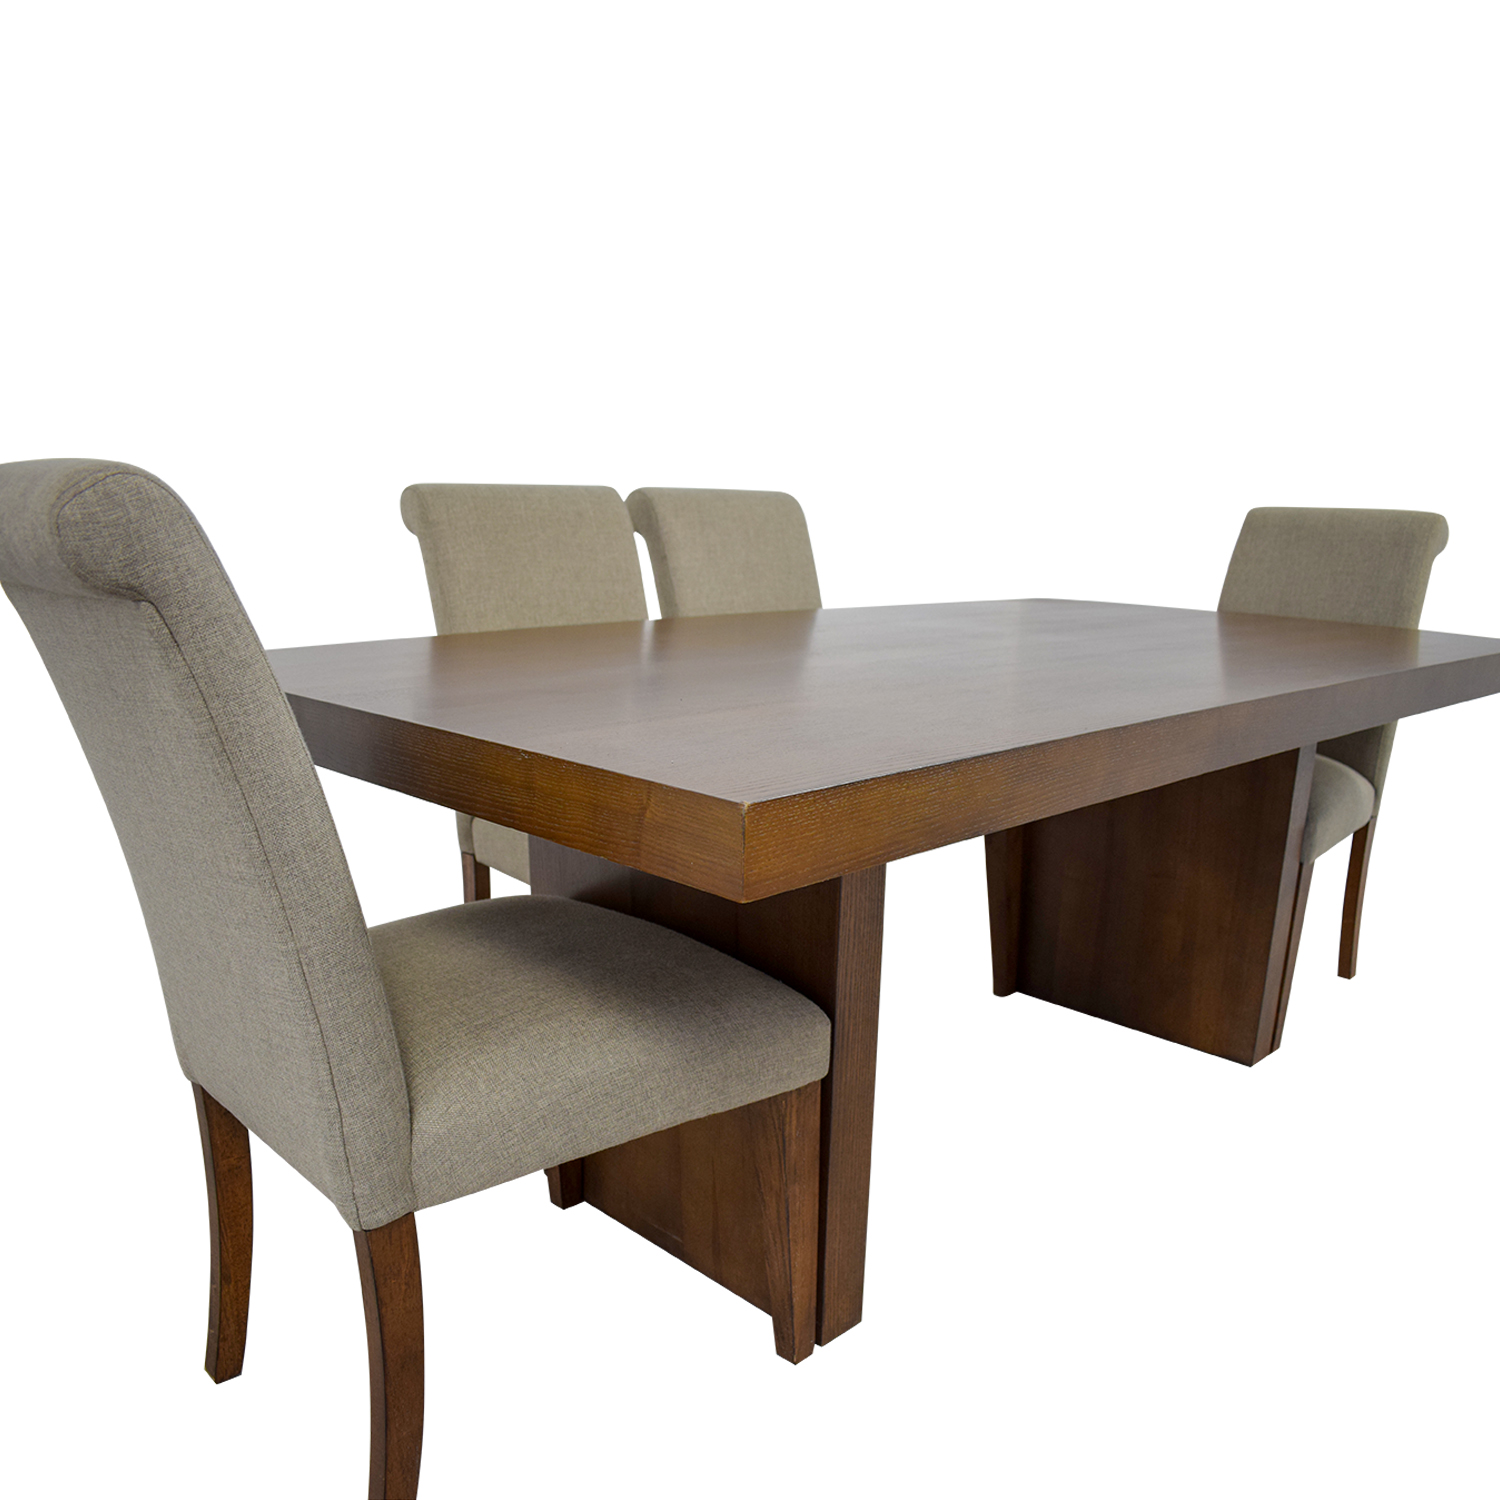 Macy's Wood Dining Set with Upholstered Chairs Macy's